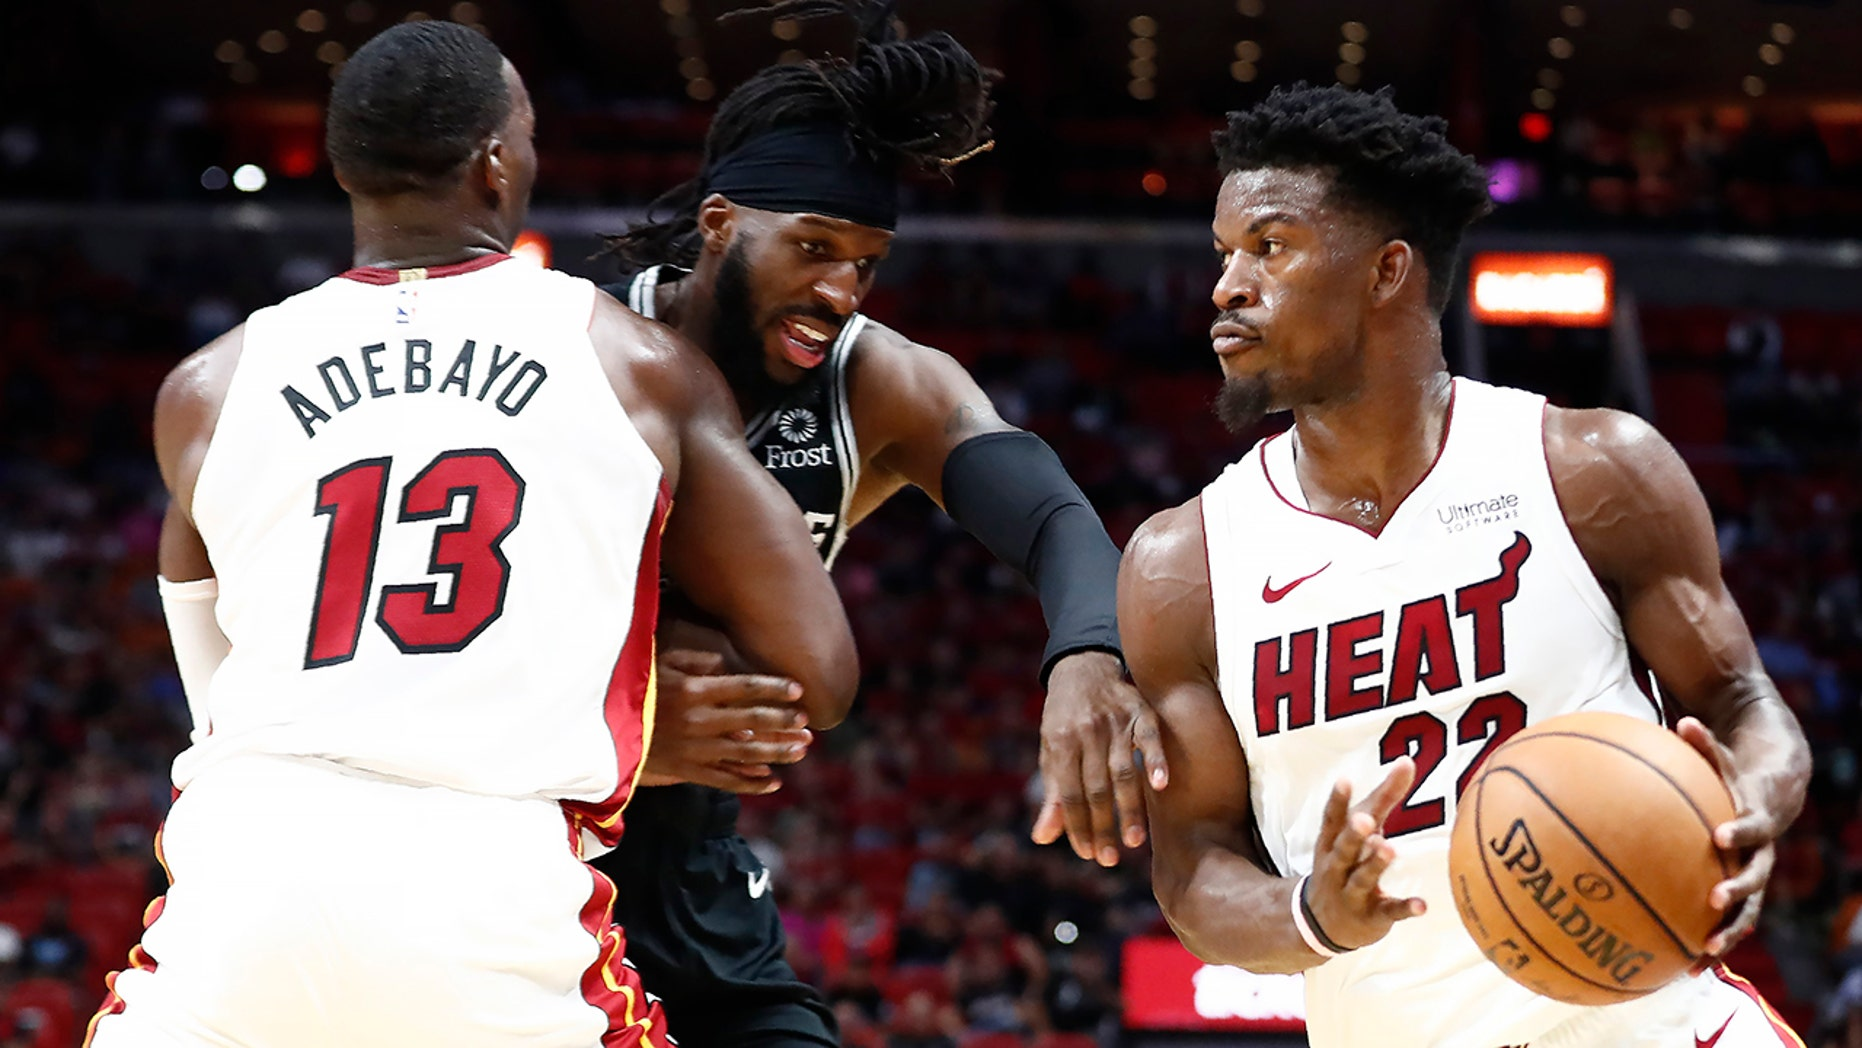 Miami Heat forward Jimmy Butler (22) dribbles the ball against San Antonio Spurs forward DeMarre Carroll (77) during the second half of an NBA preseason basketball game Tuesday, Oct. 8, 2019, in Miami. (AP Photo/Brynn Anderson)